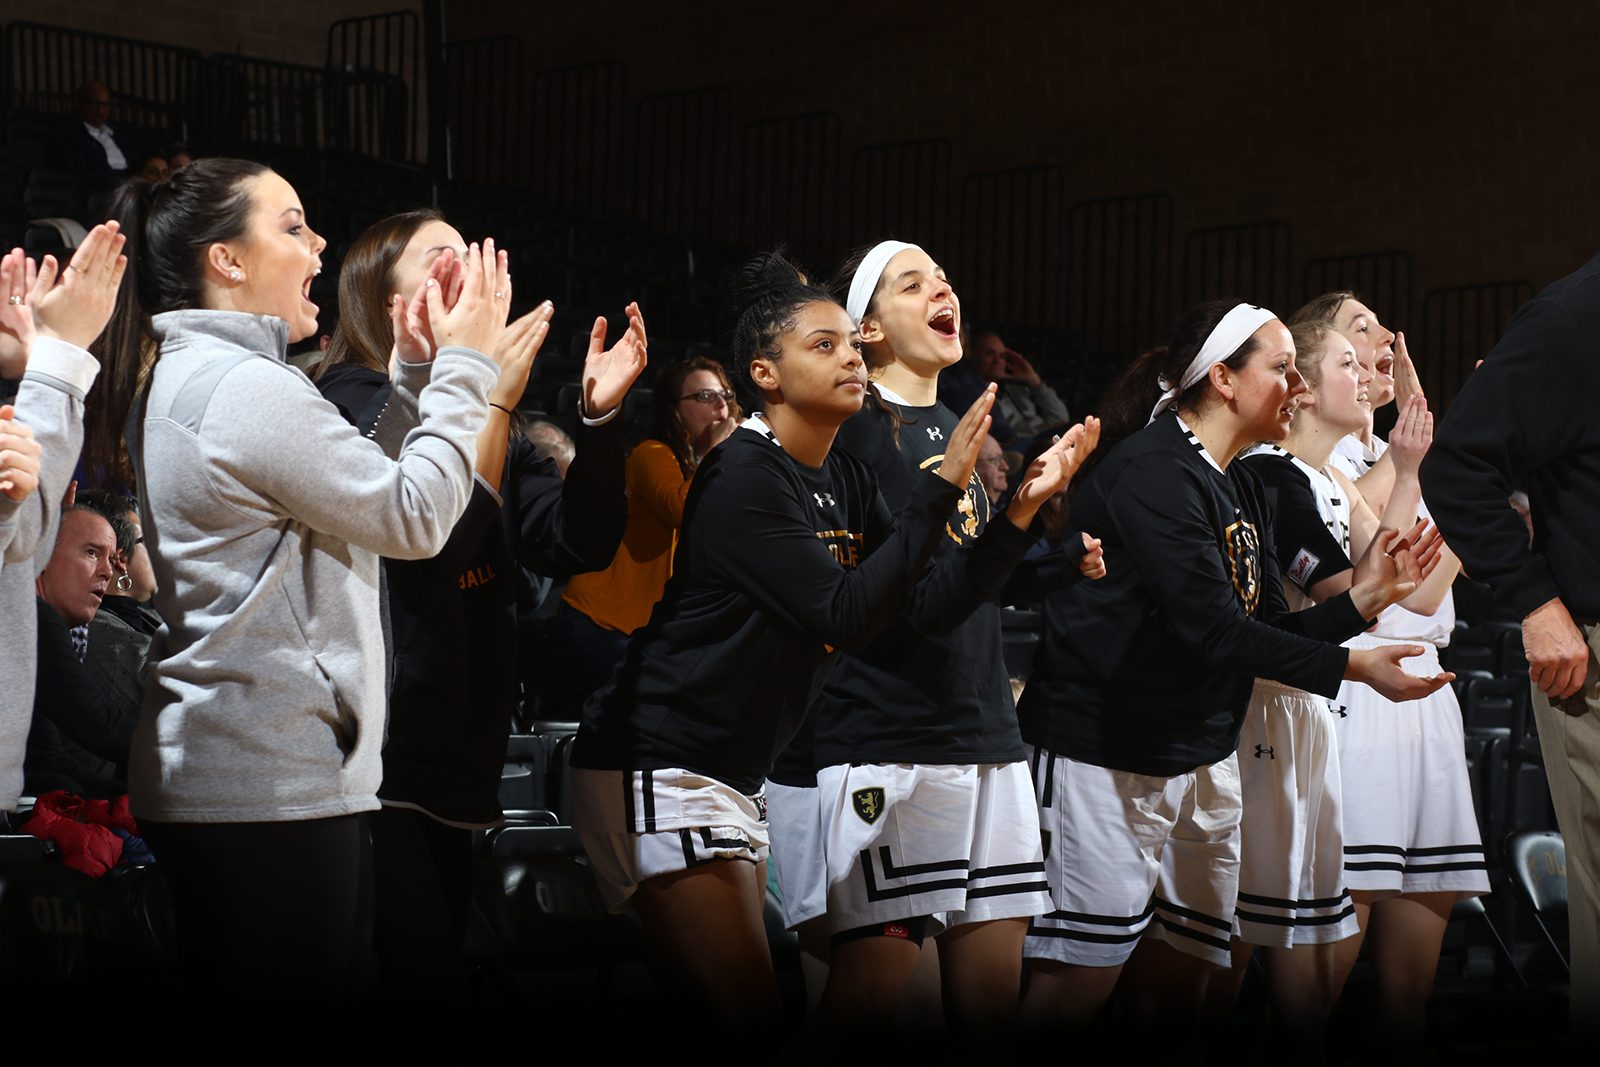 Women's basketball players cheer for their team members with fans in the background.